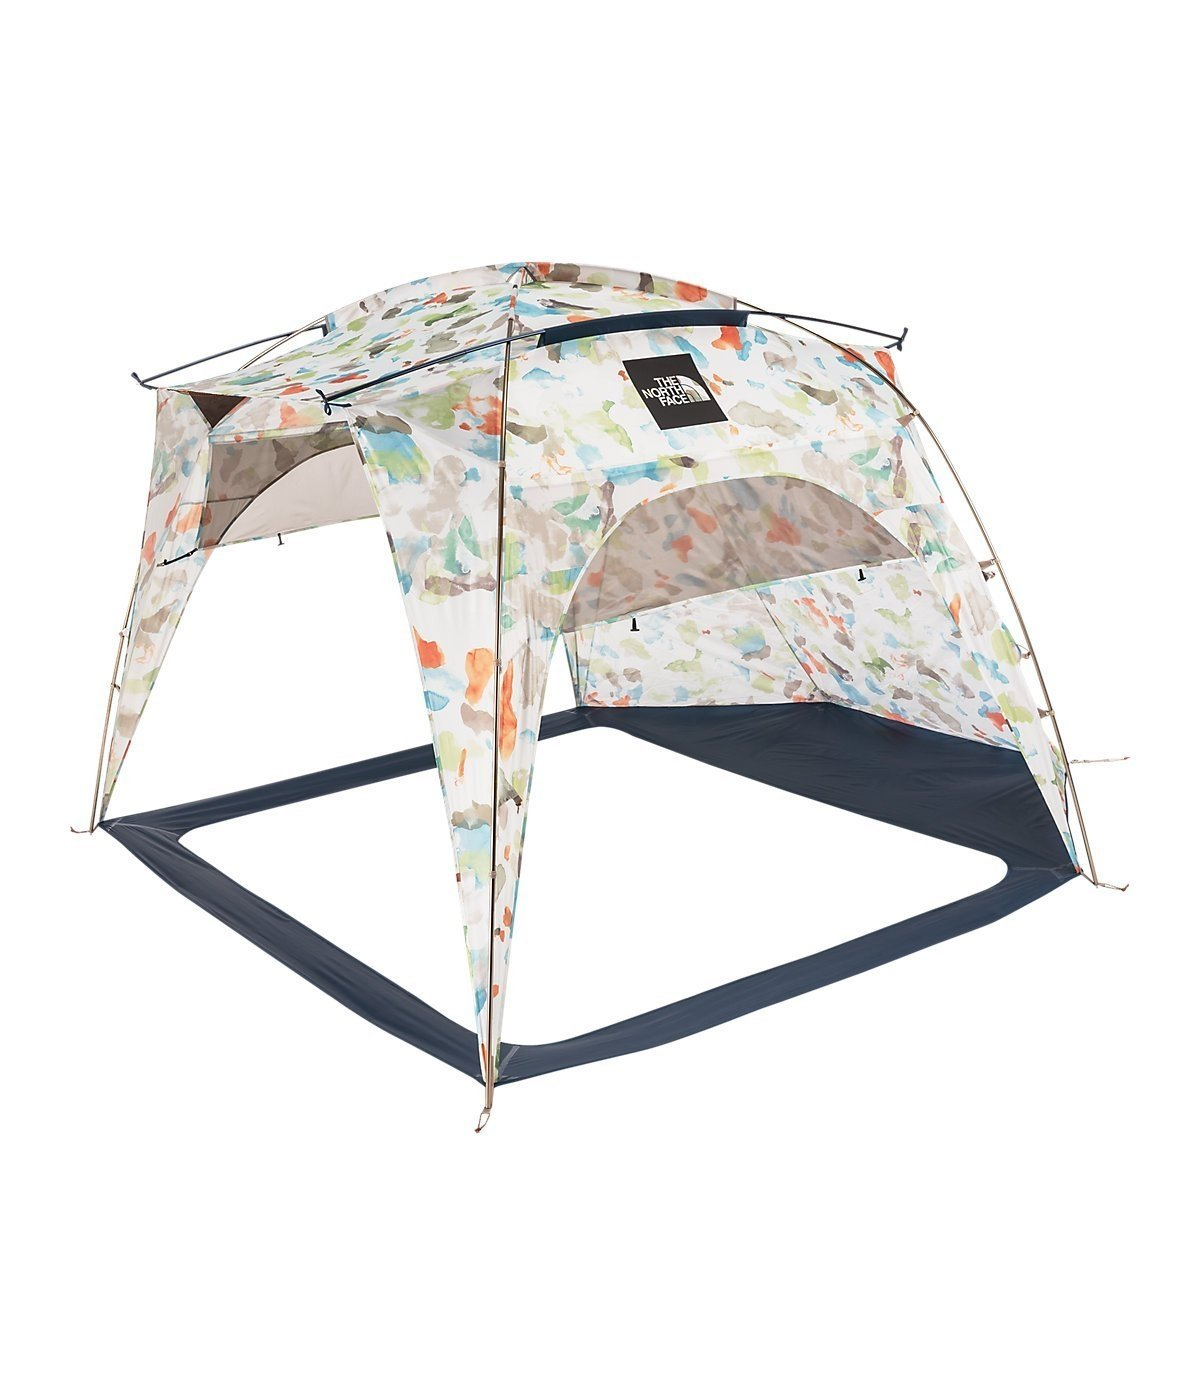 The-North-Face-Homestead-Shelter-Tent  sc 1 st  eBay & The North Face Homestead Shelter Tent | eBay